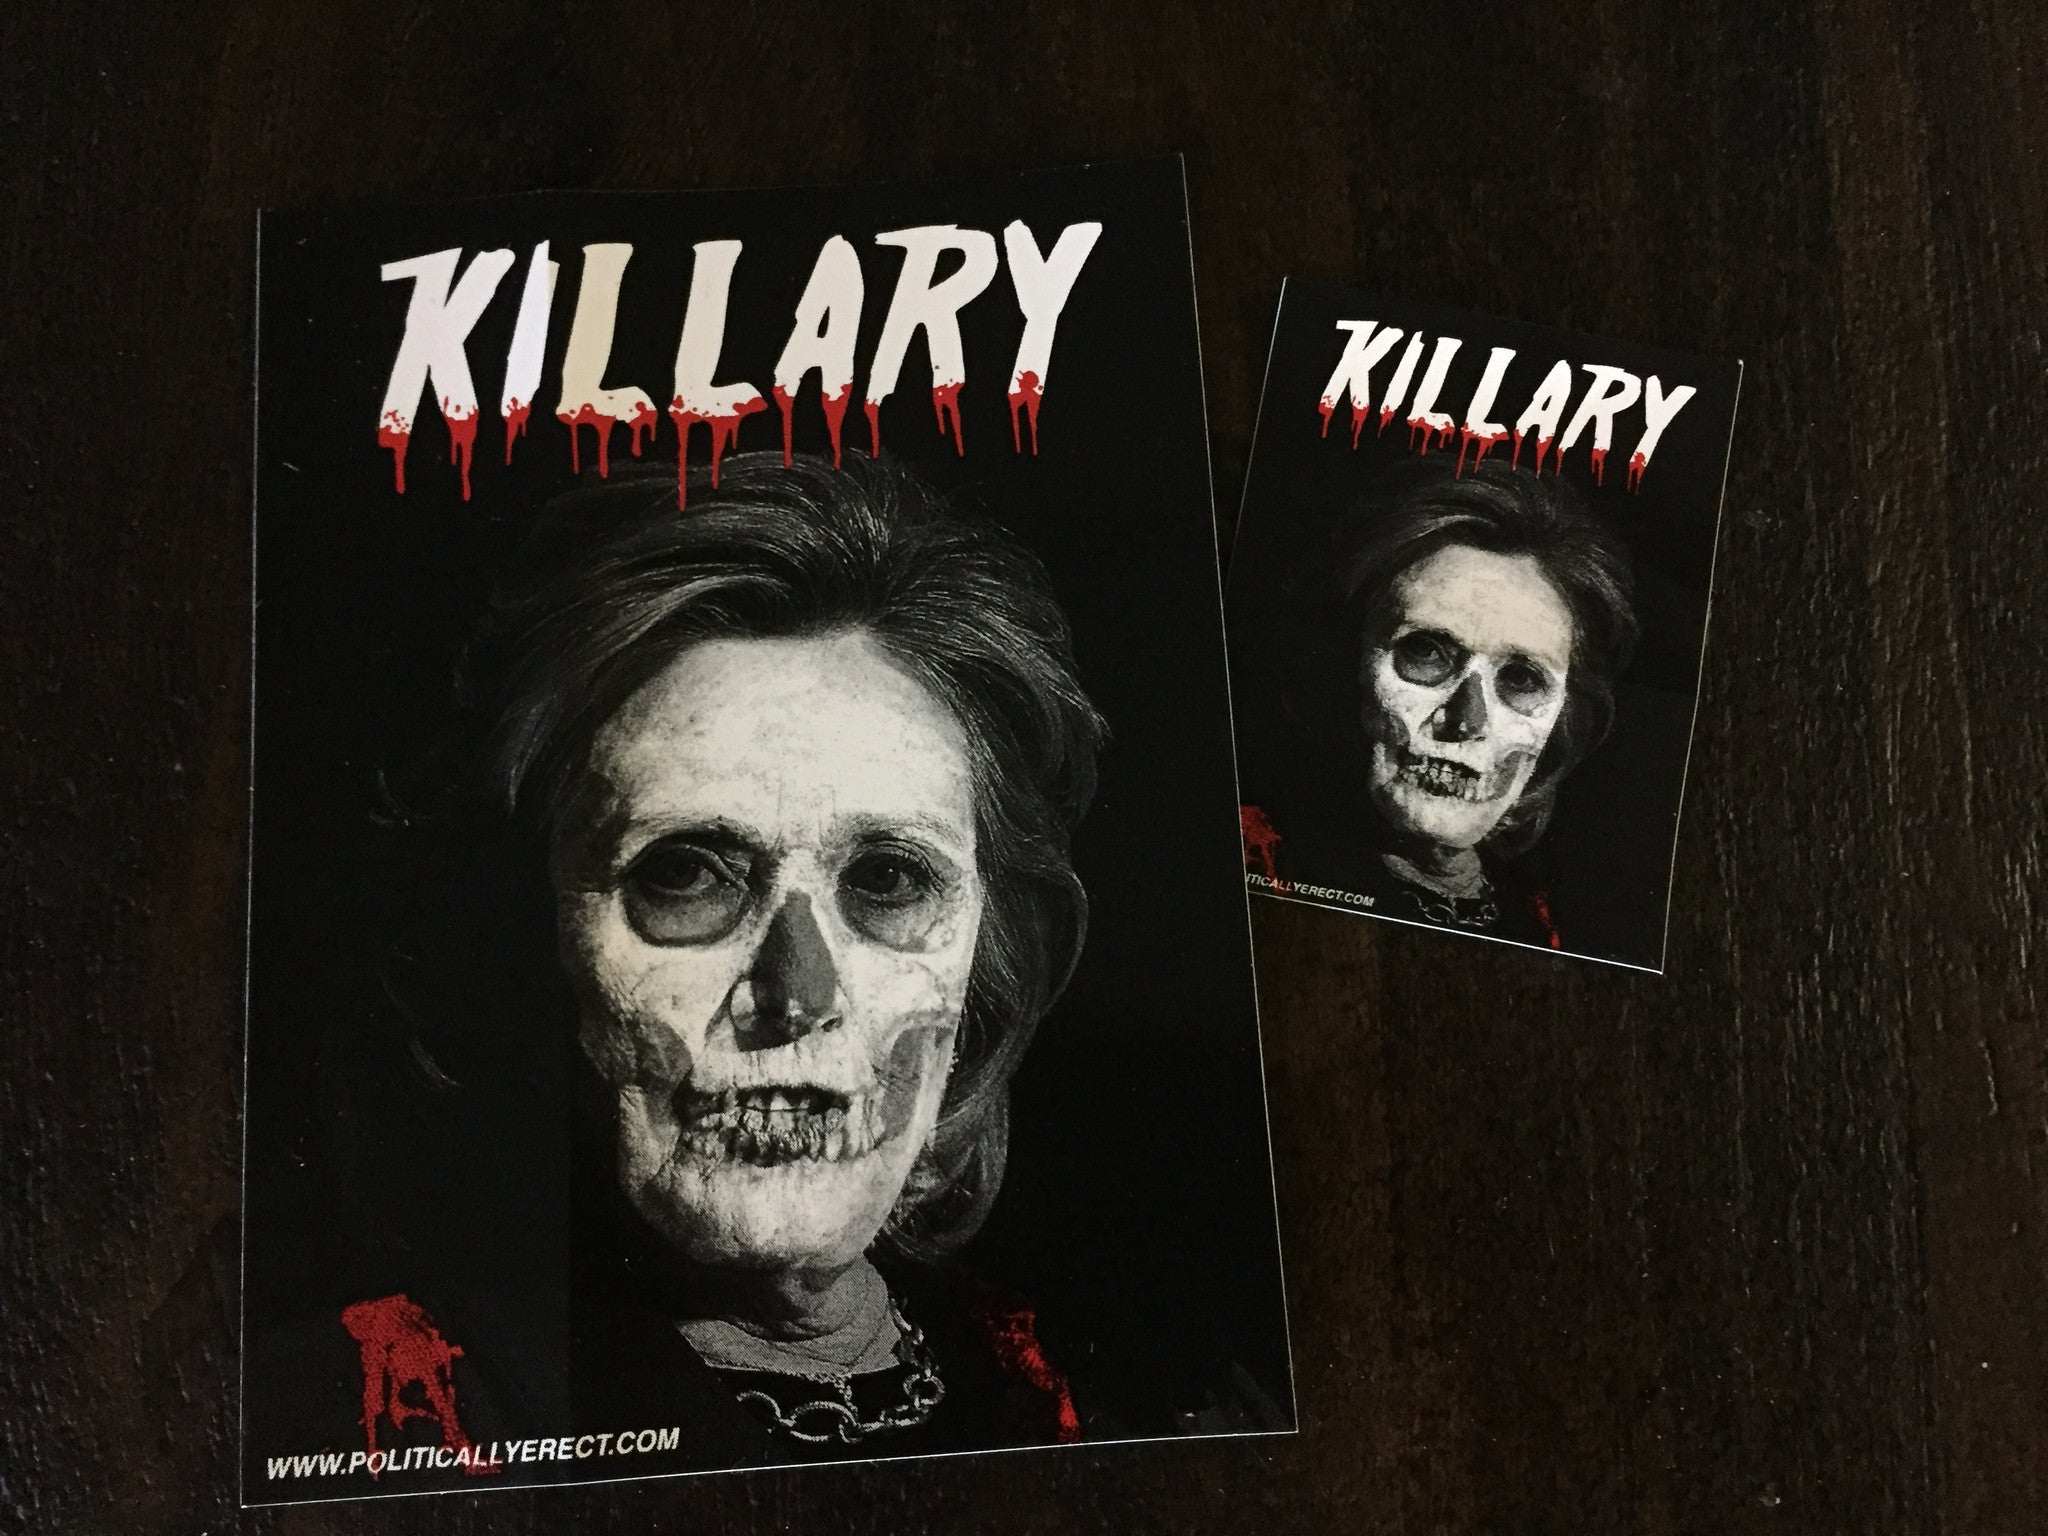 KILLARY STICKER